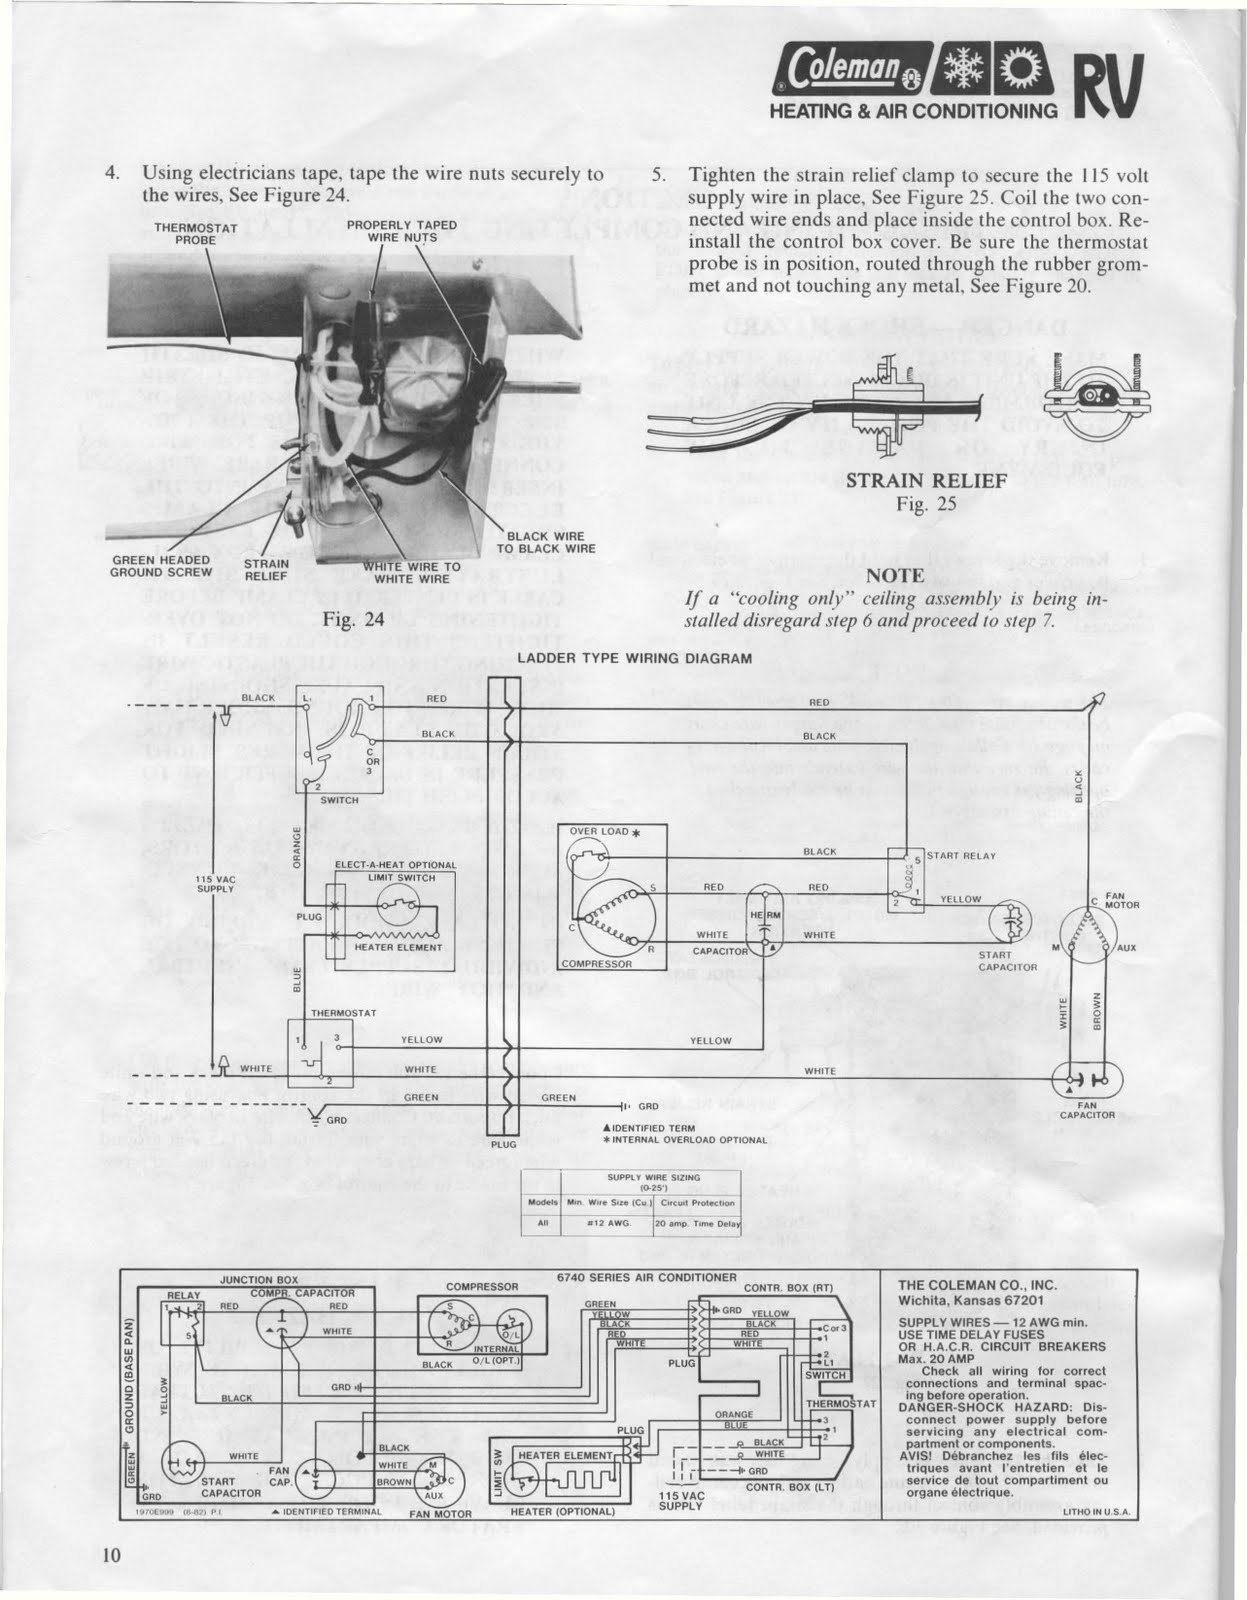 Fleetwood Rv    Wiring       Diagram         Wiring       Diagram    Database